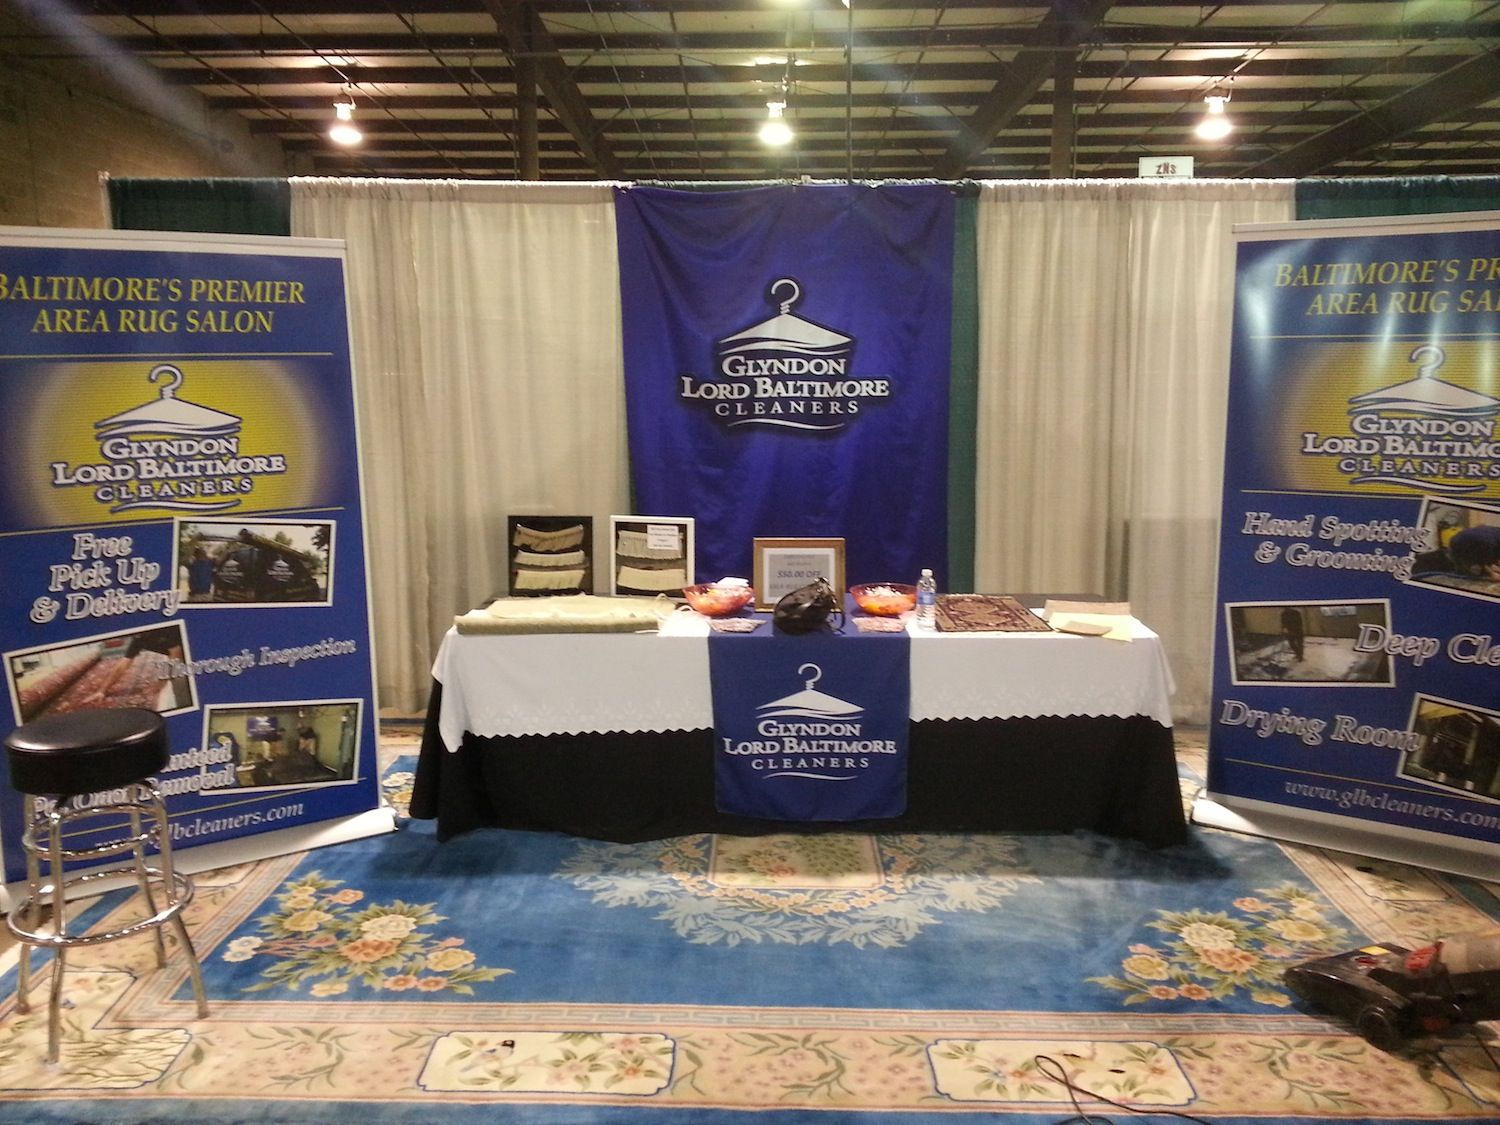 Take A Look At Our Booth From The Maryland Home And Garden Show!  #drycleaninggbaltimore #glyndonlordbaltimorecleaners  #arearugcleaningbaltimore